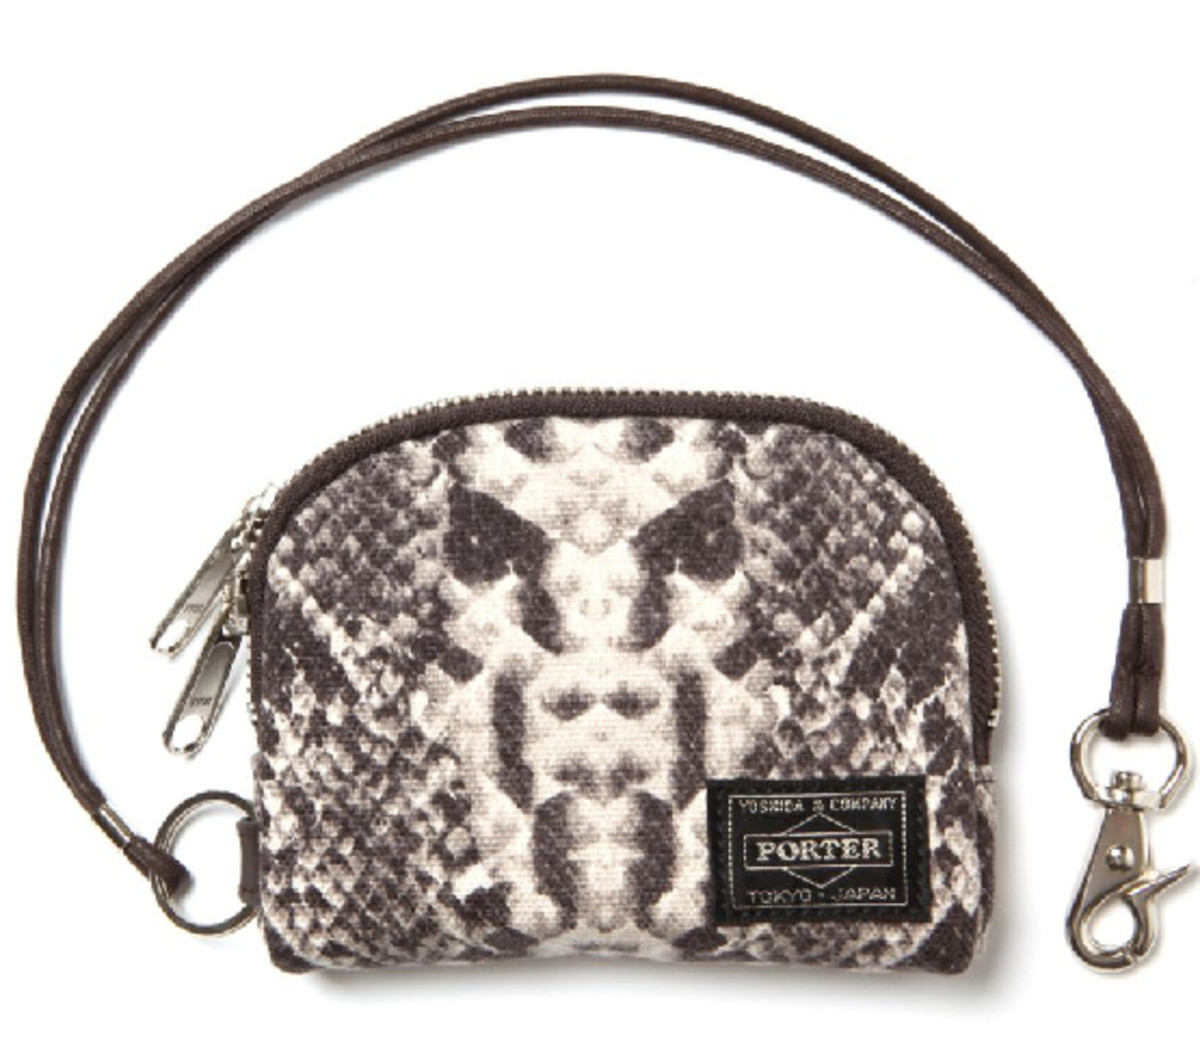 head-porter-animal-collection-python-cord-wallet-01